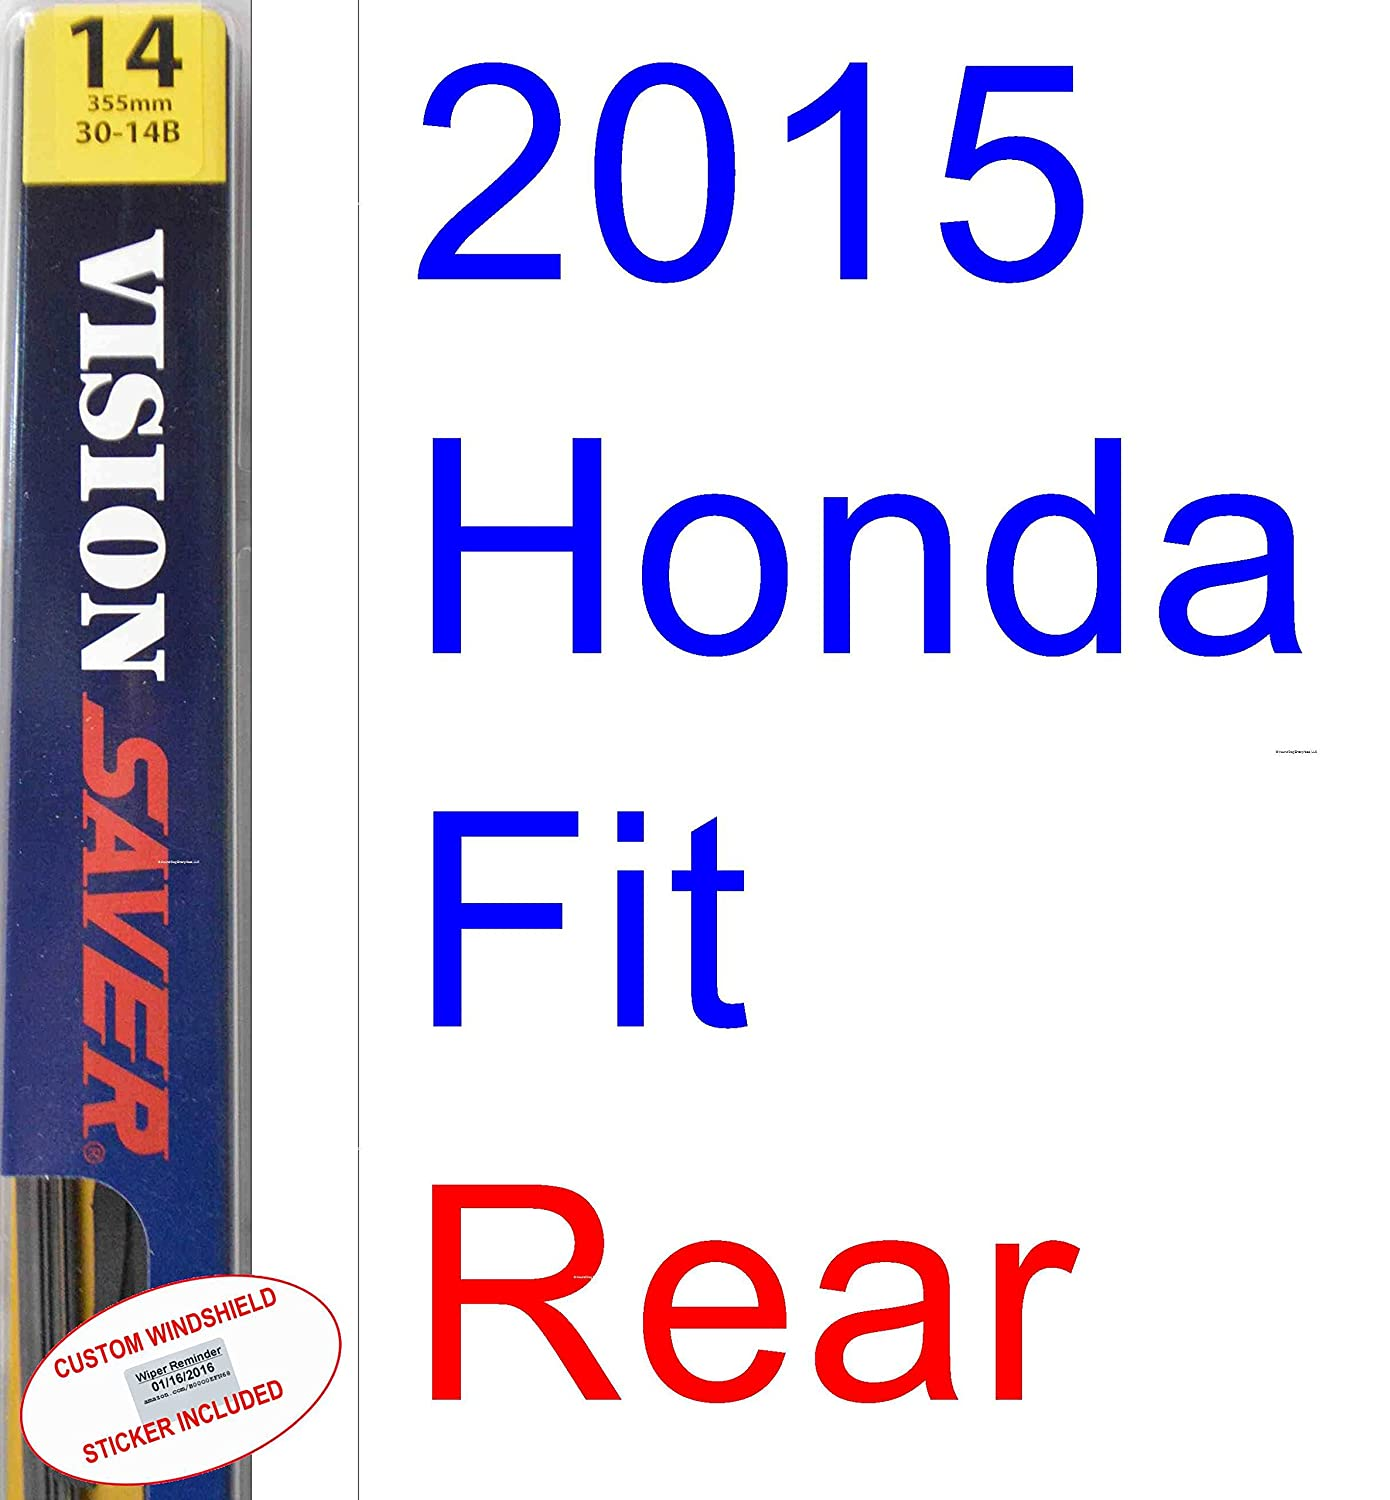 Amazon.com: 2015 Honda Fit Replacement Wiper Blade Set/Kit (Set of 2 Blades) (Saver Automotive Products-Vision Saver): Automotive